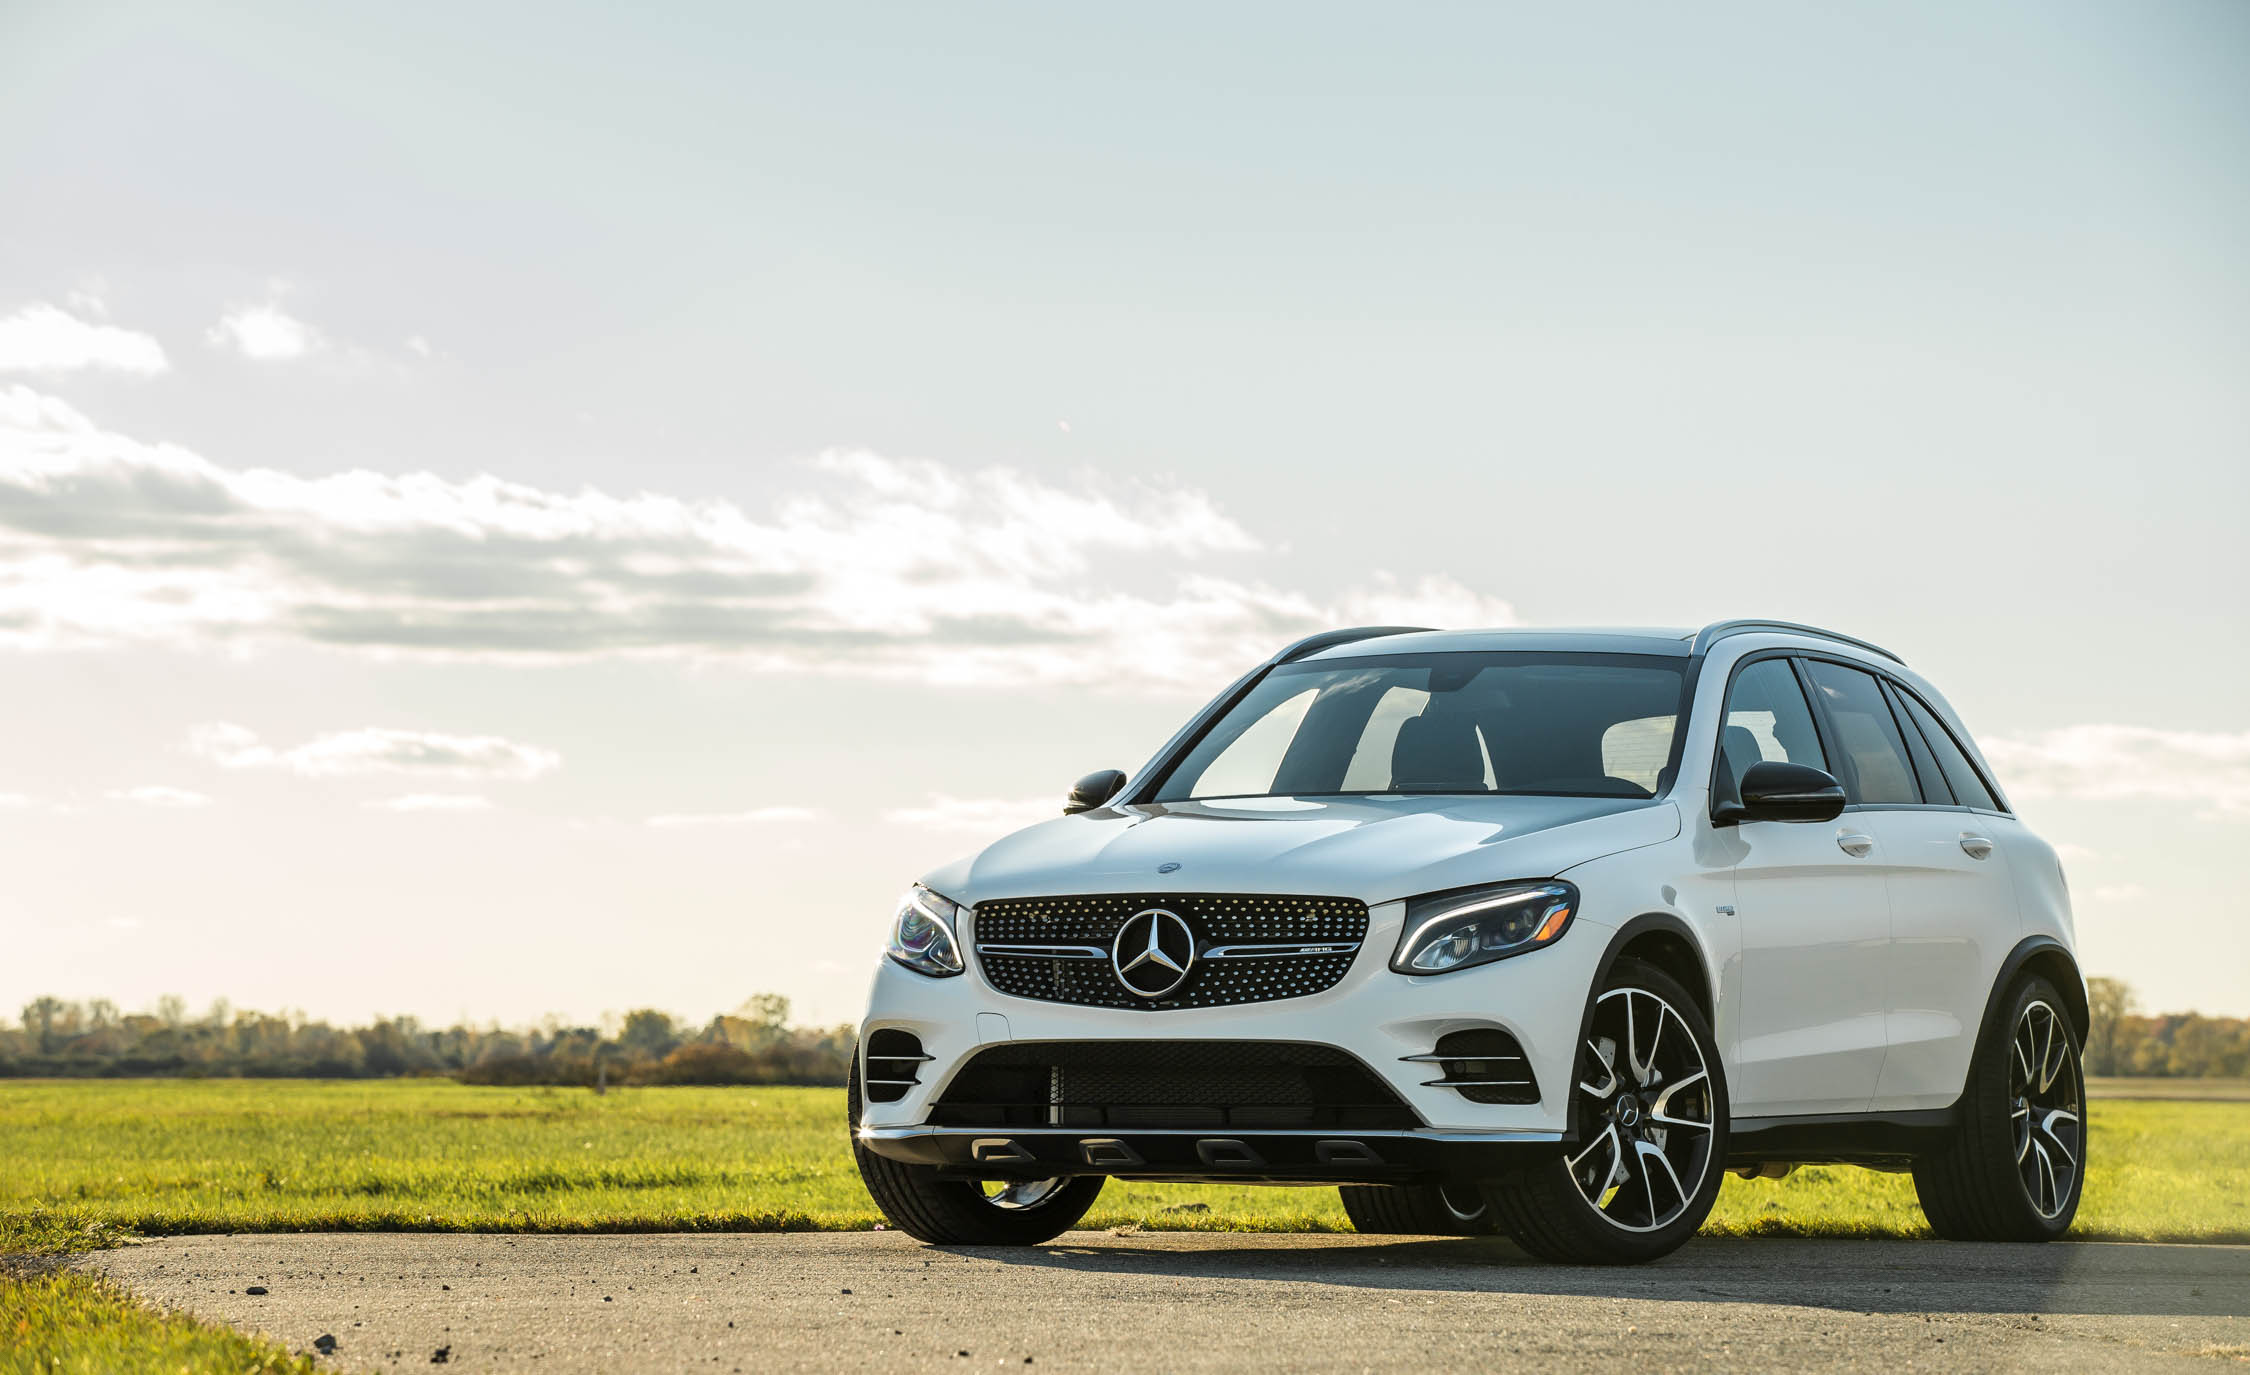 Featured Image of 2017 Mercedes AMG GLC43 SUV 4MATIC